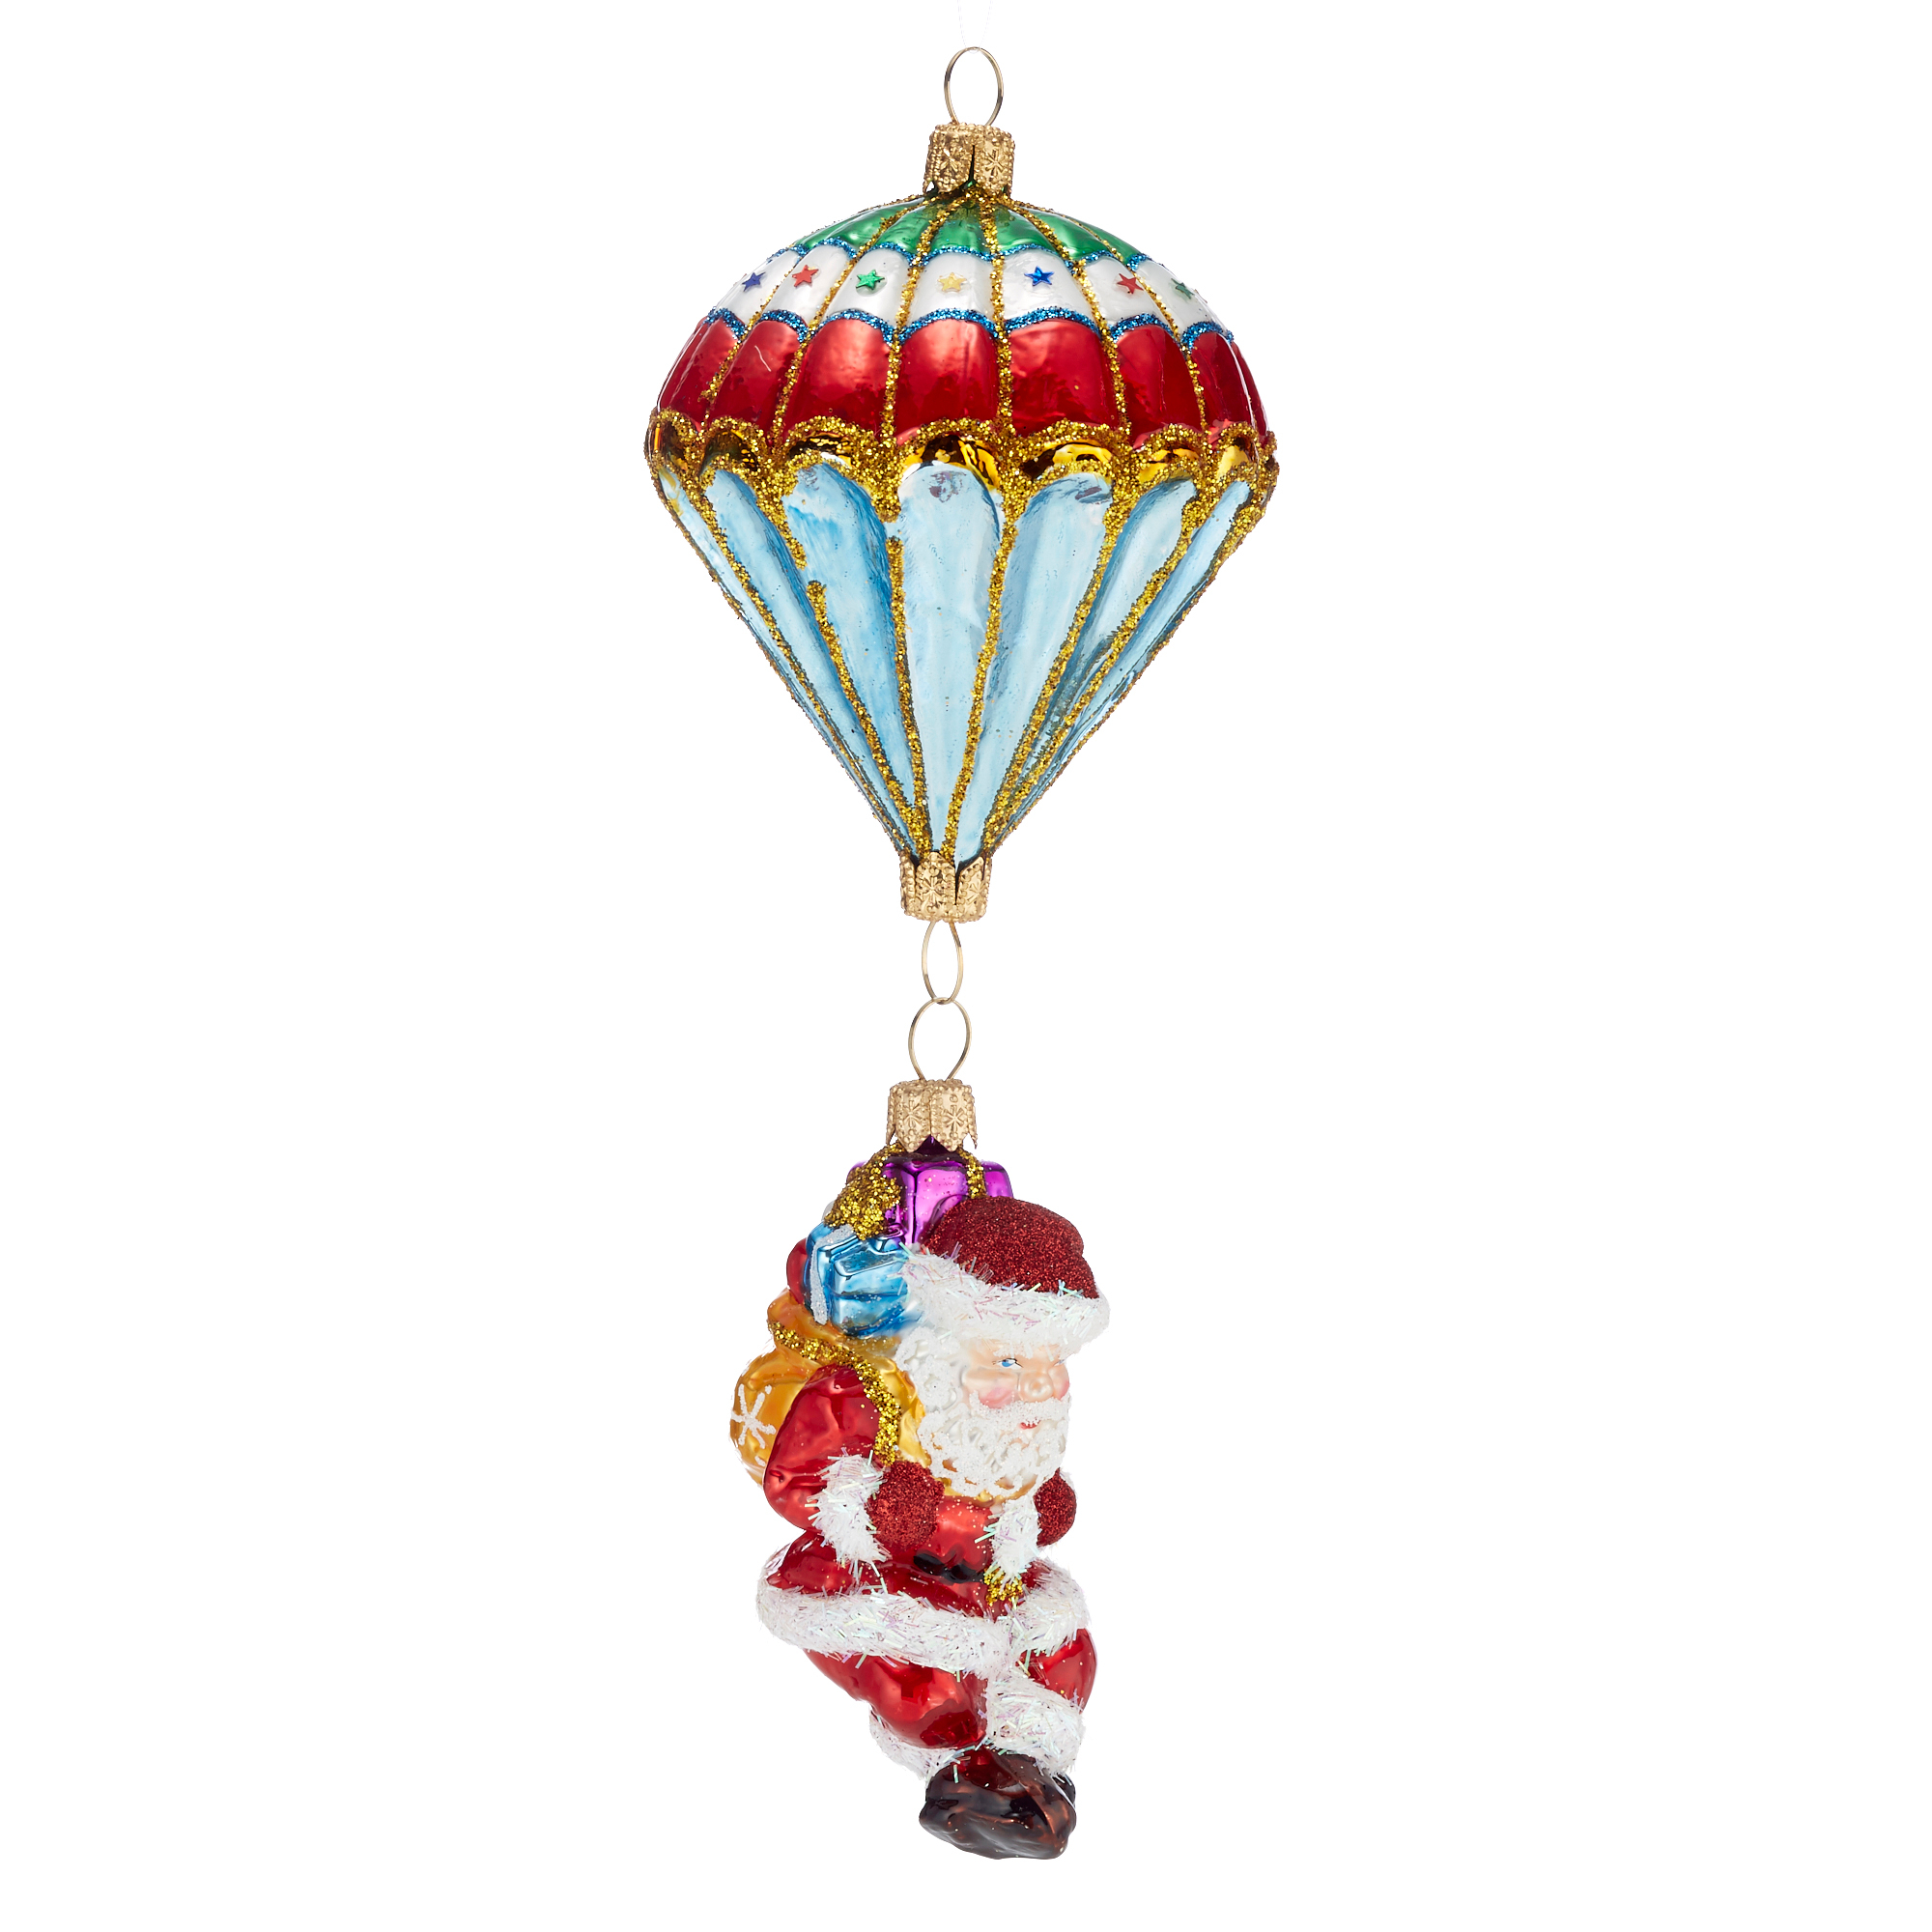 Parachuting Santa Christmas Ornament